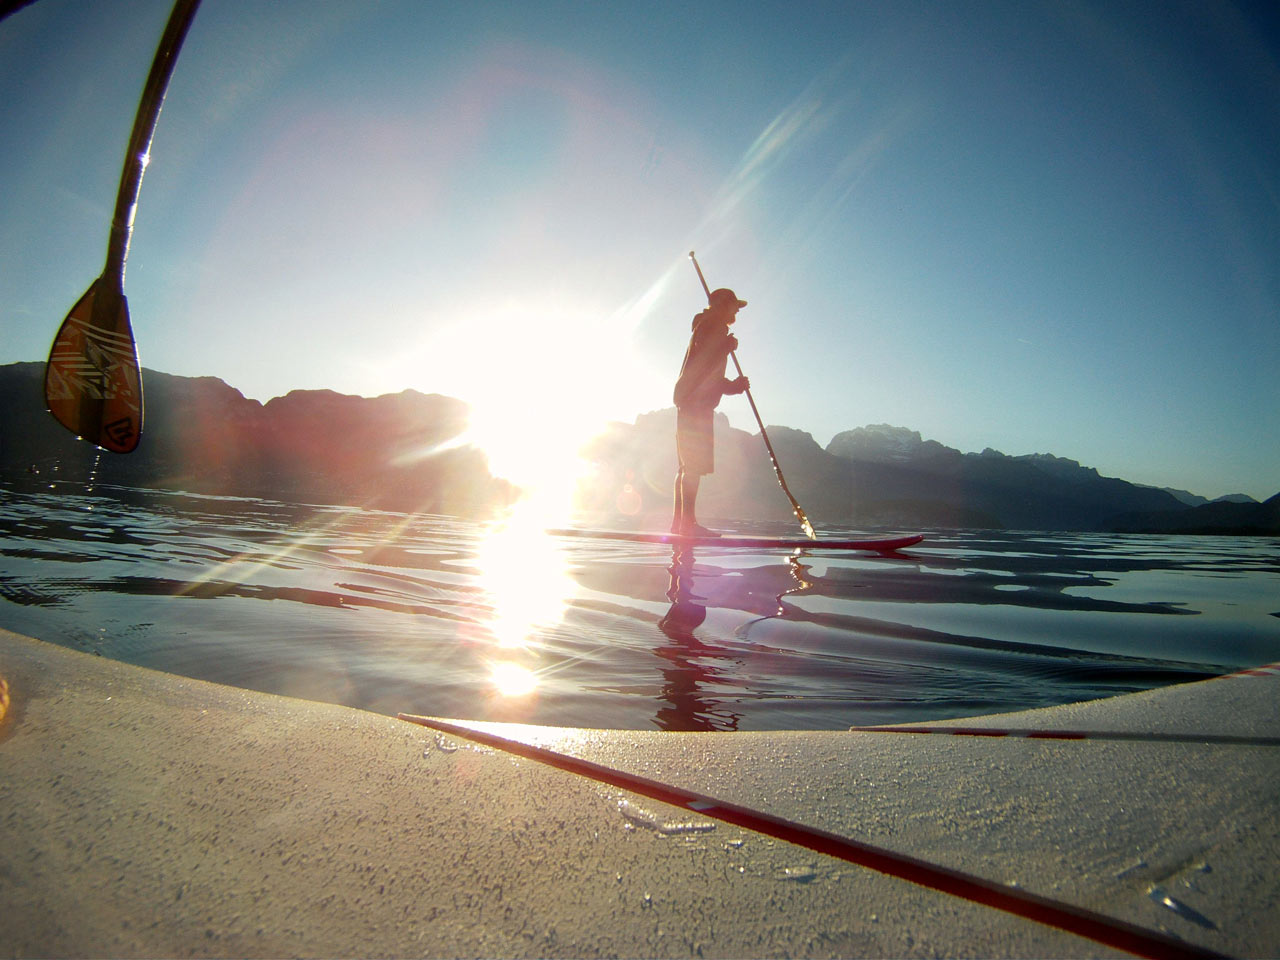 La petite session de stand up paddle du matin qui va bien